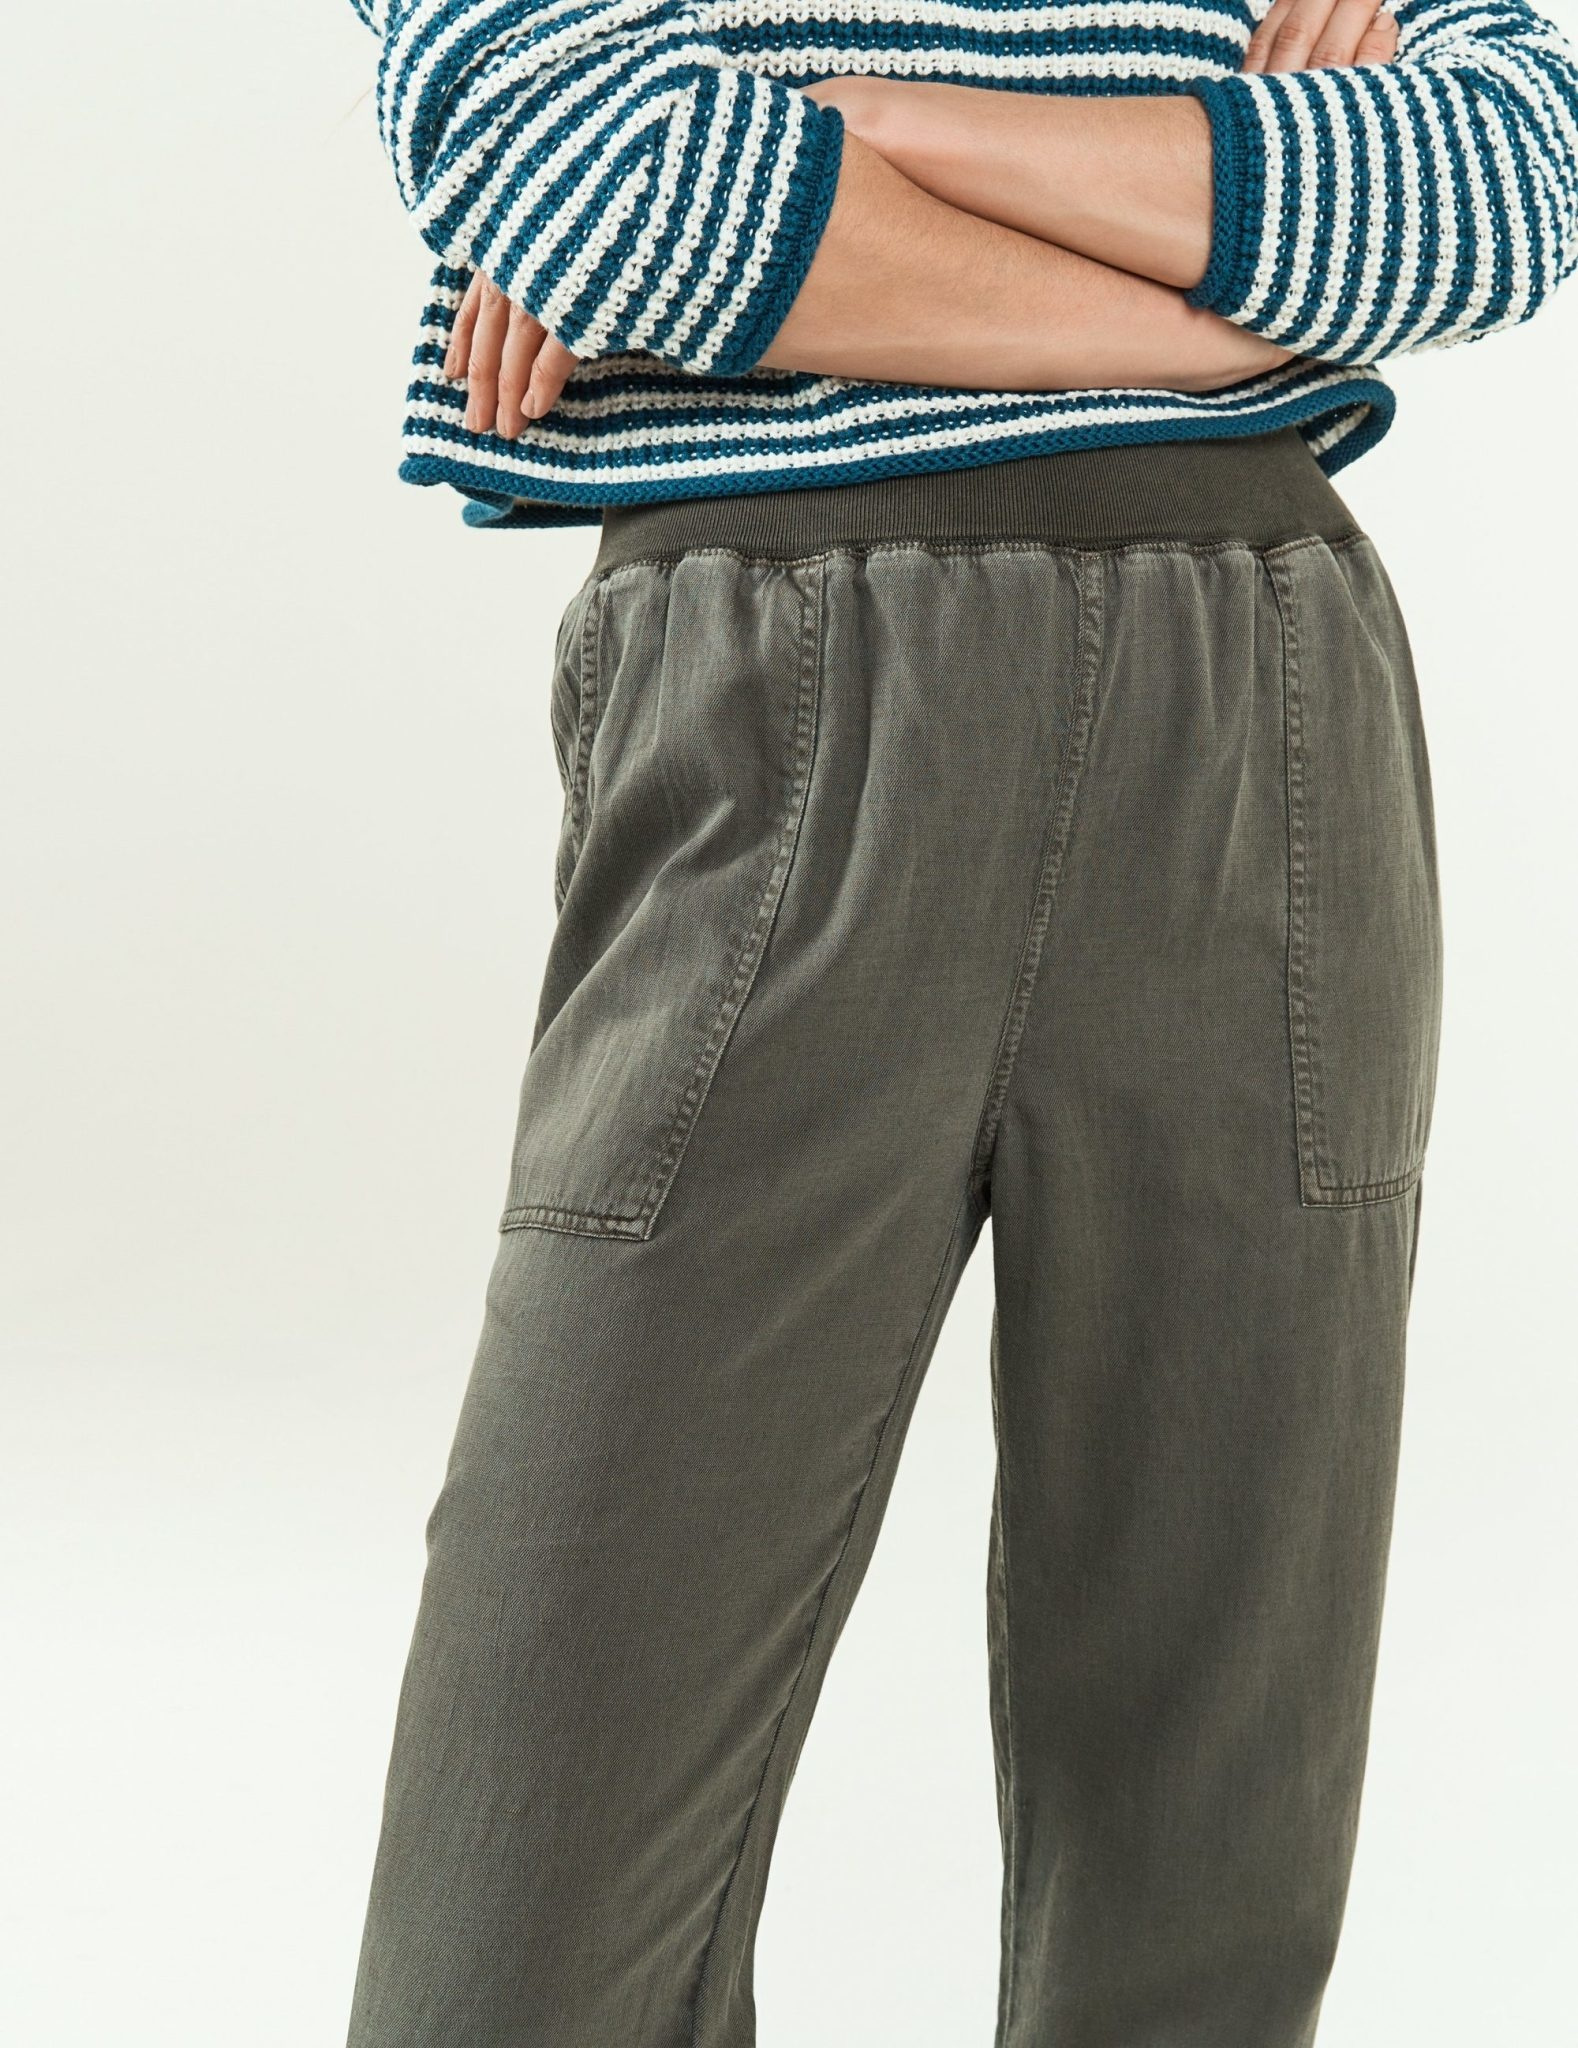 Faherty Faherty Arlie Day Pant